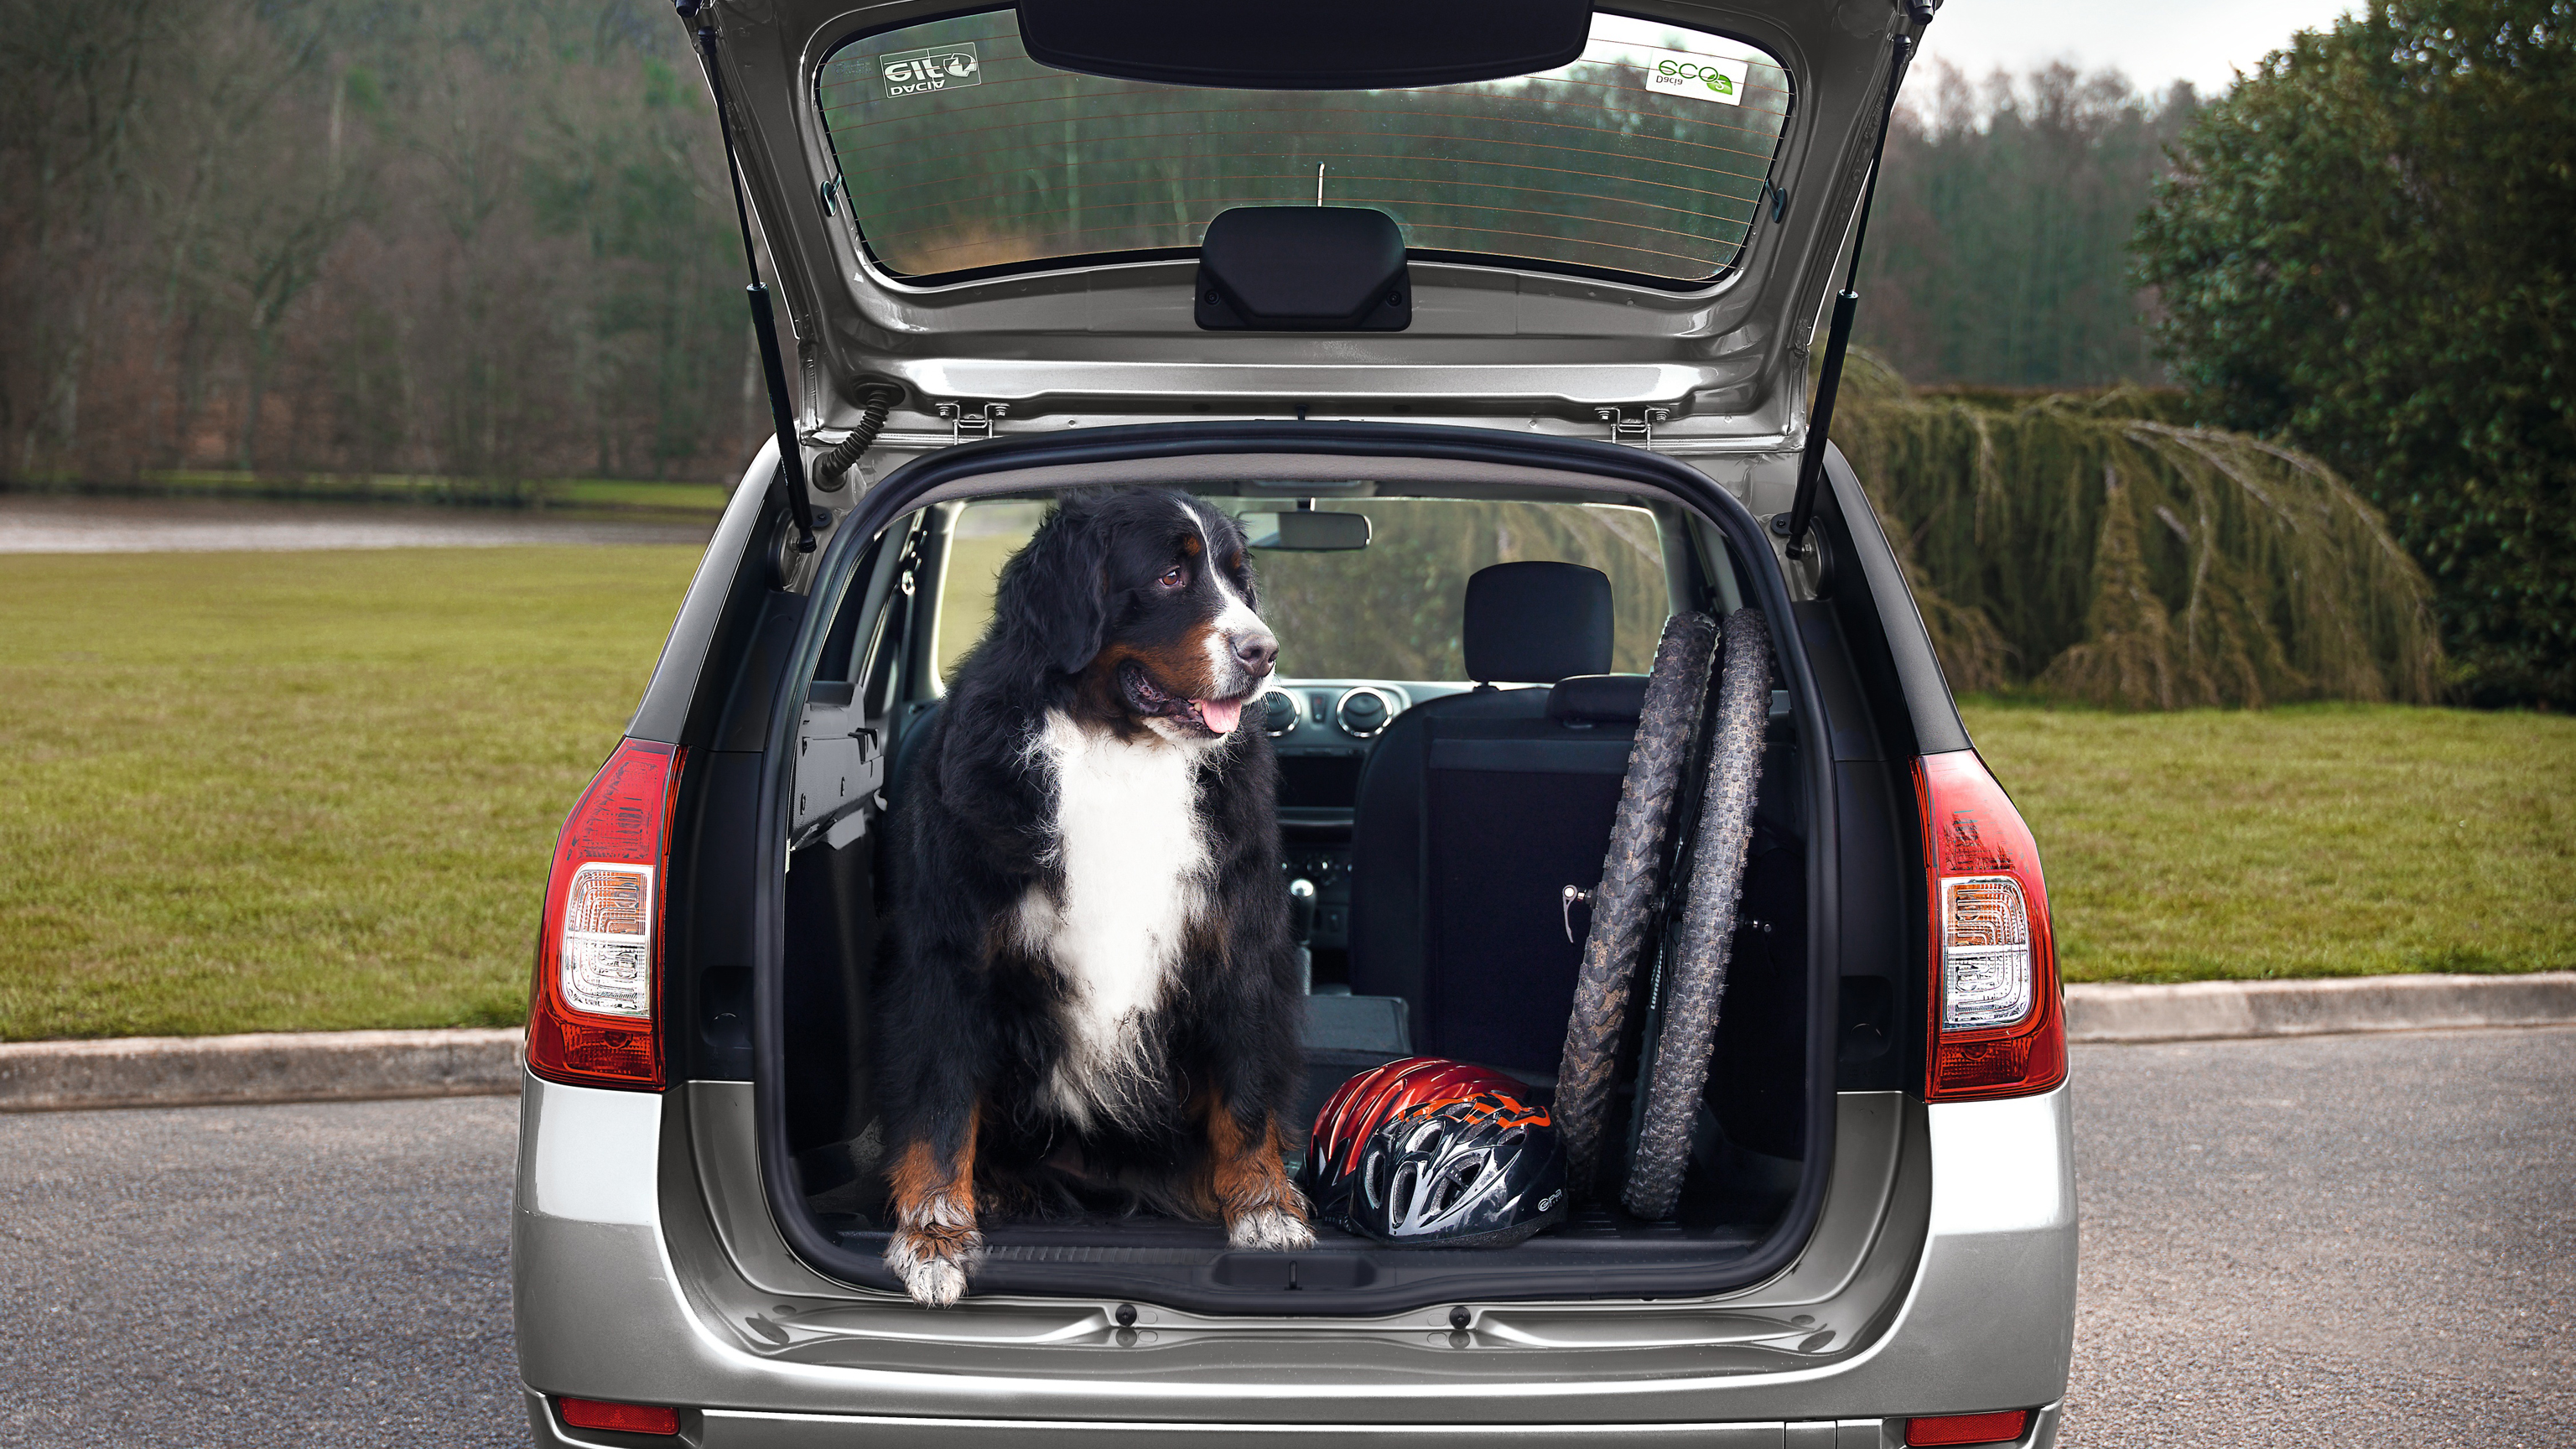 Dacia-logan-mcv-dog-in-boot.jpg